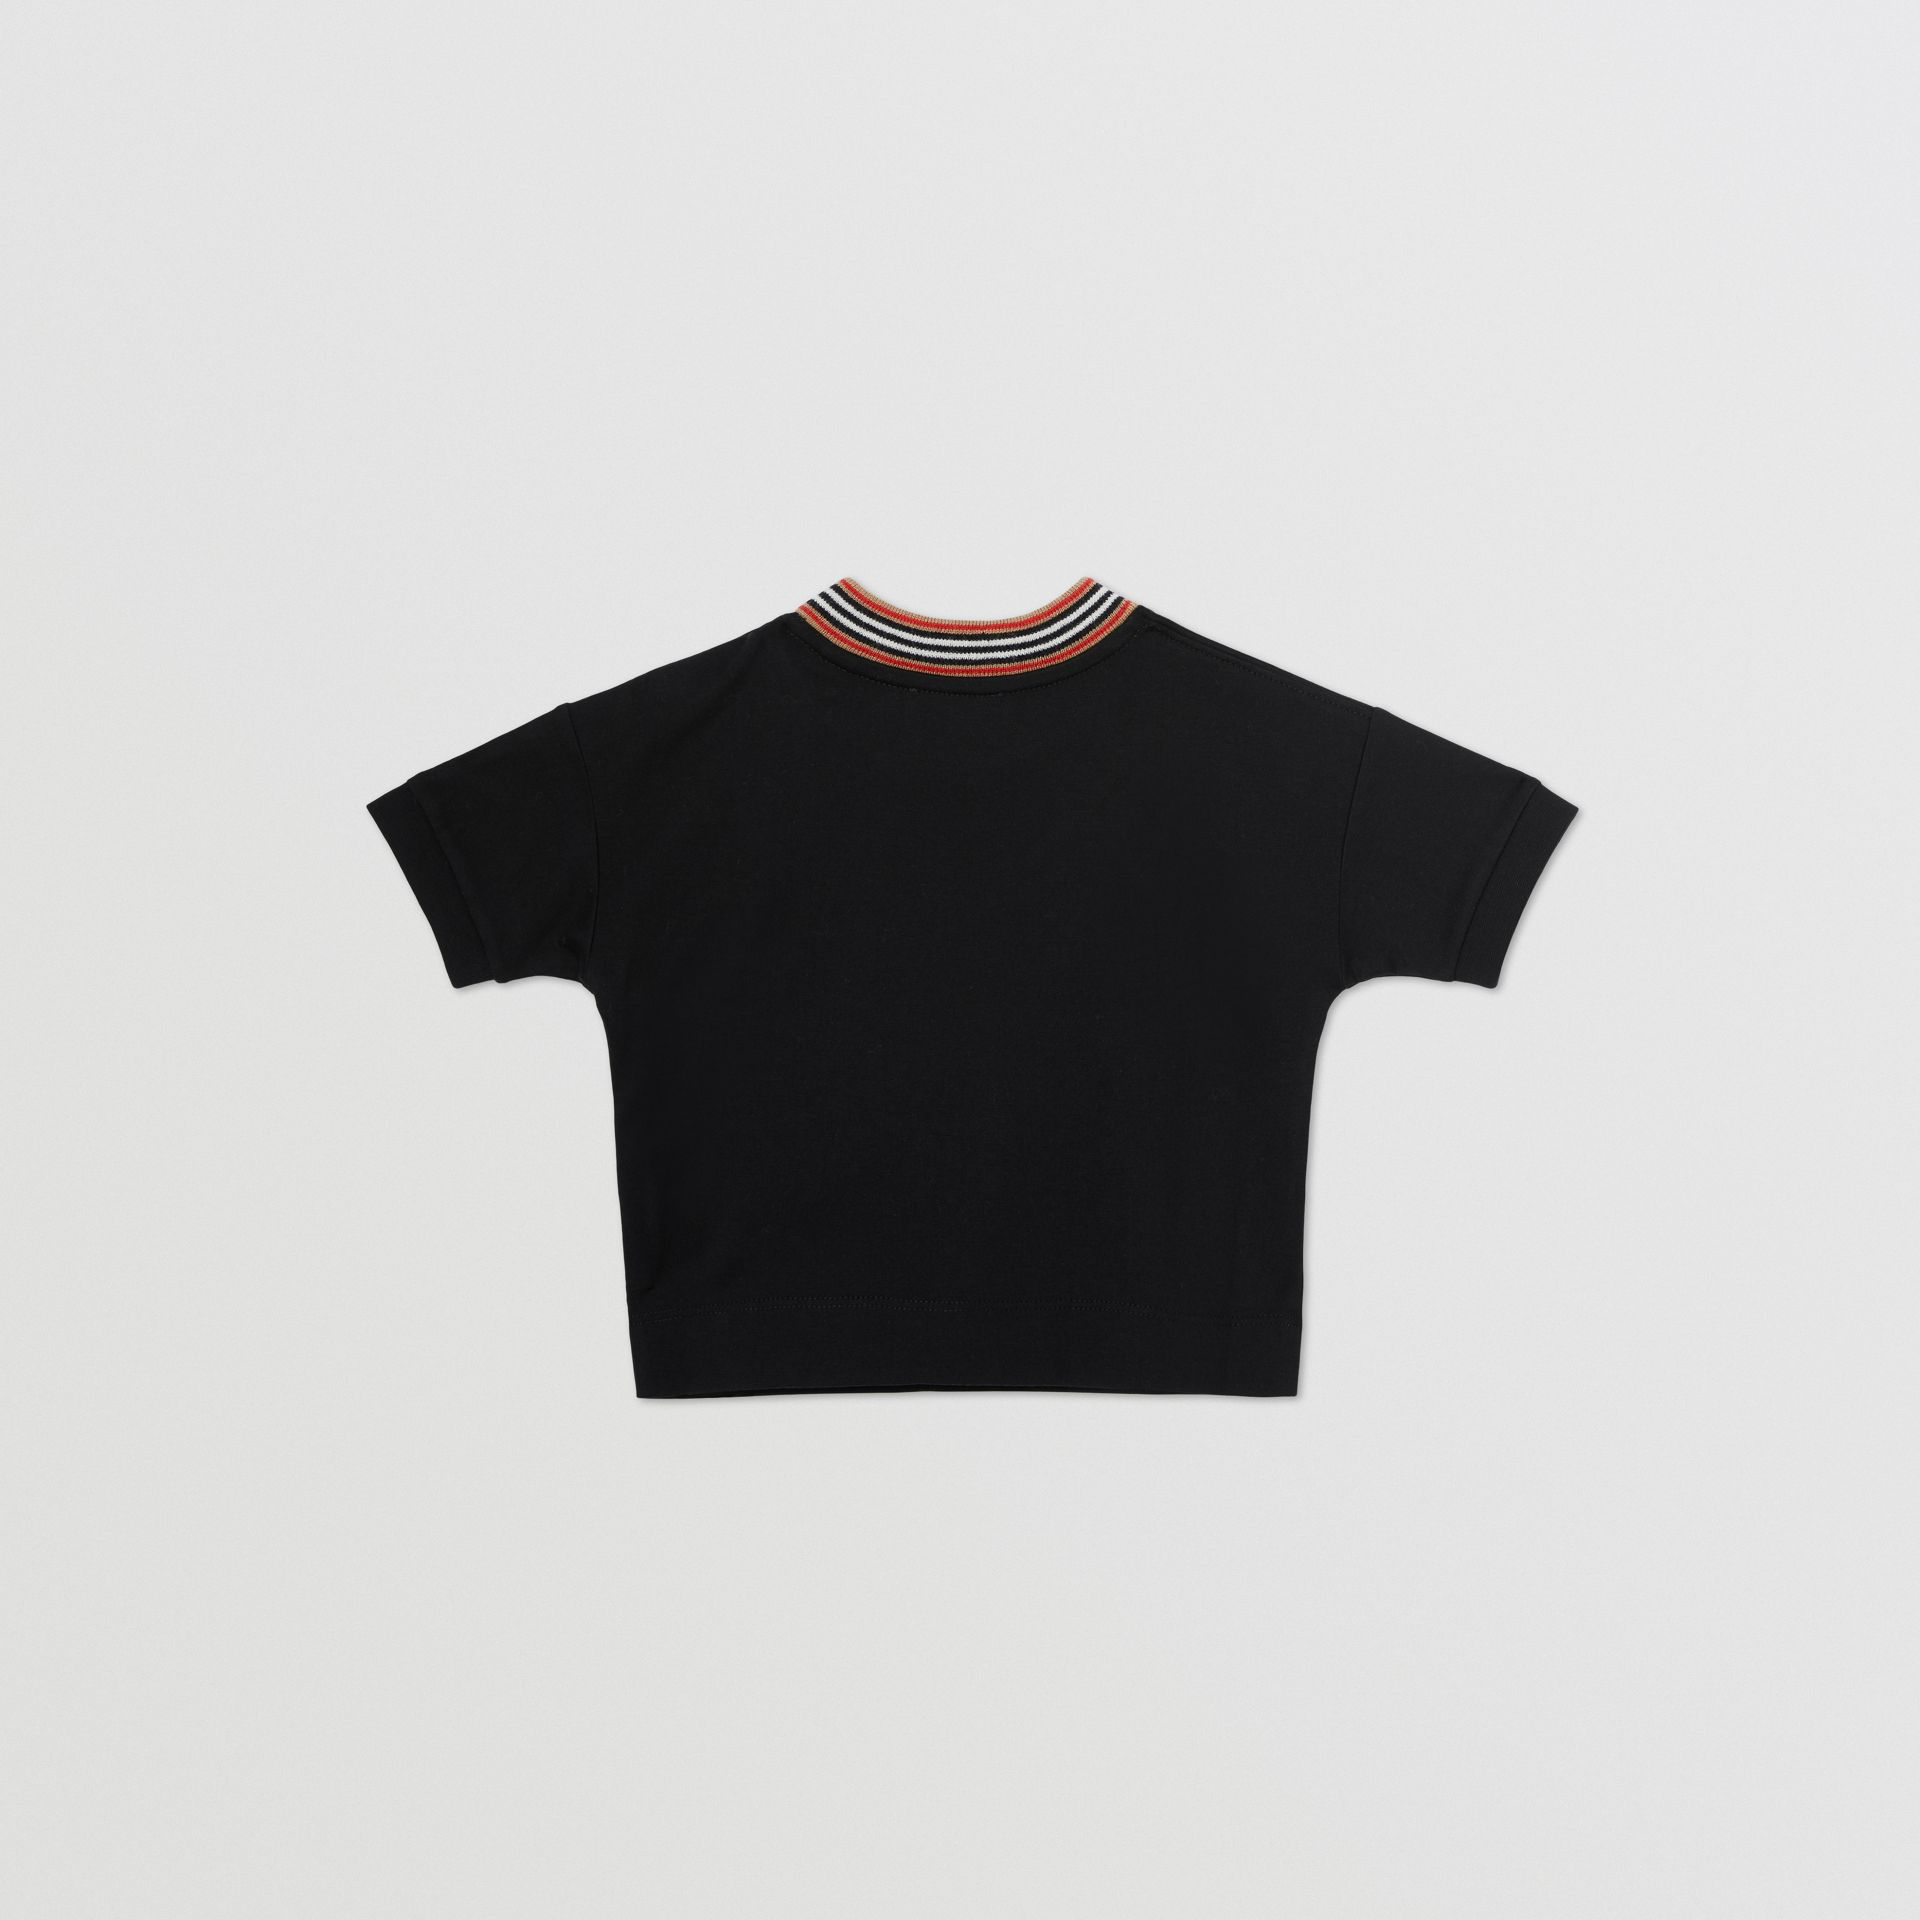 Cake Print Cotton T-shirt in Black - Children | Burberry - gallery image 3